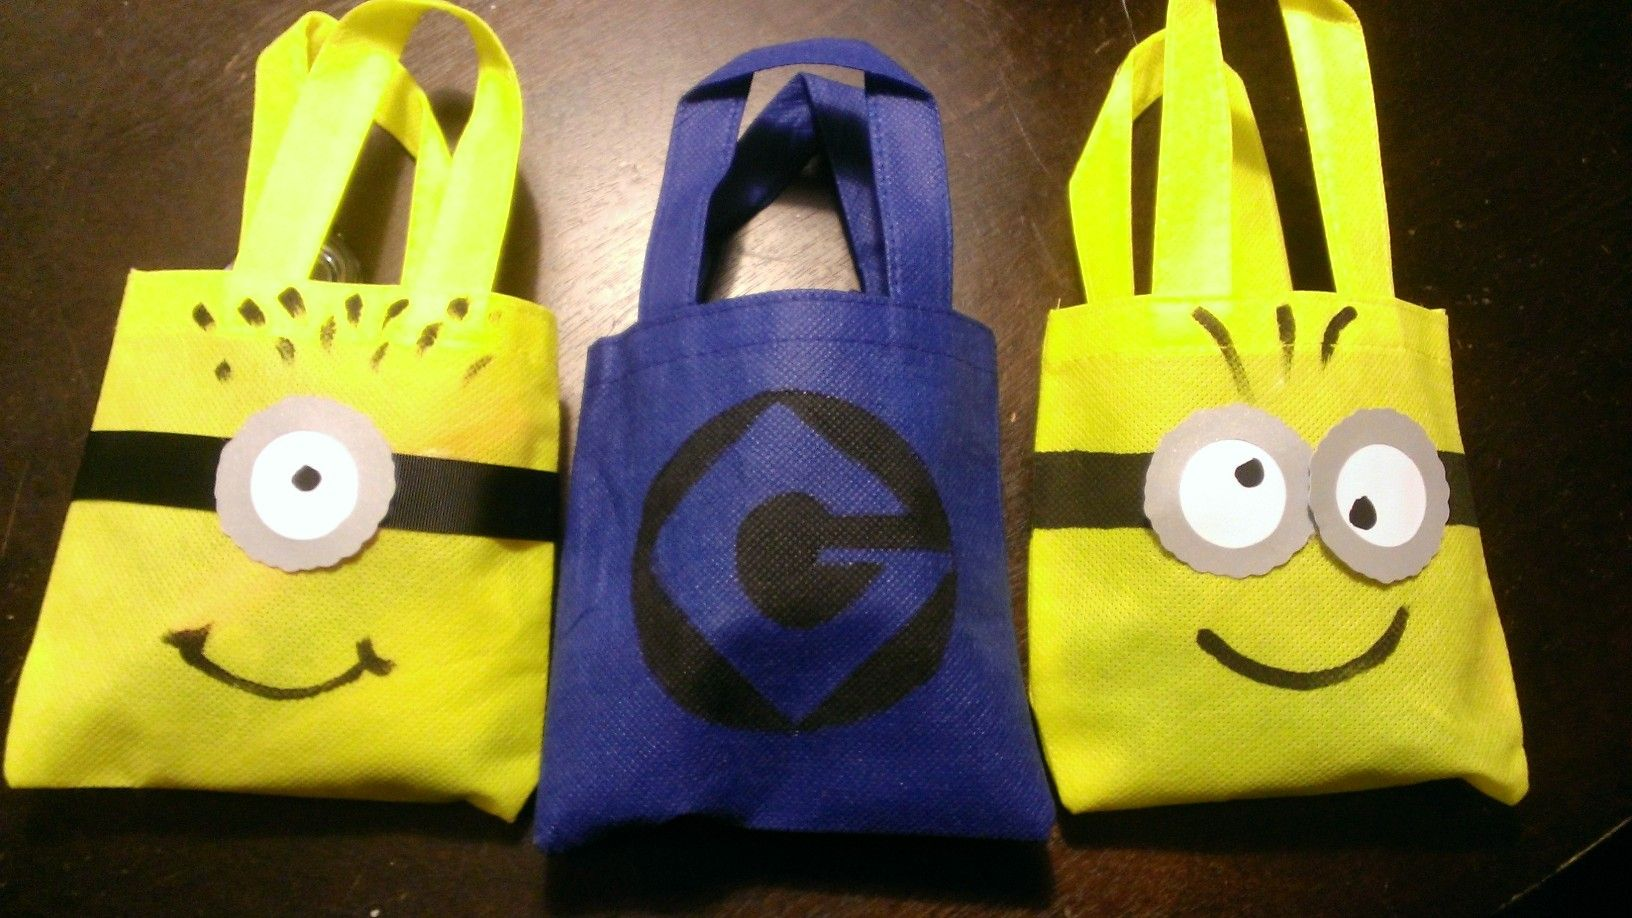 despicable me minion party favor bags made some look. Black Bedroom Furniture Sets. Home Design Ideas